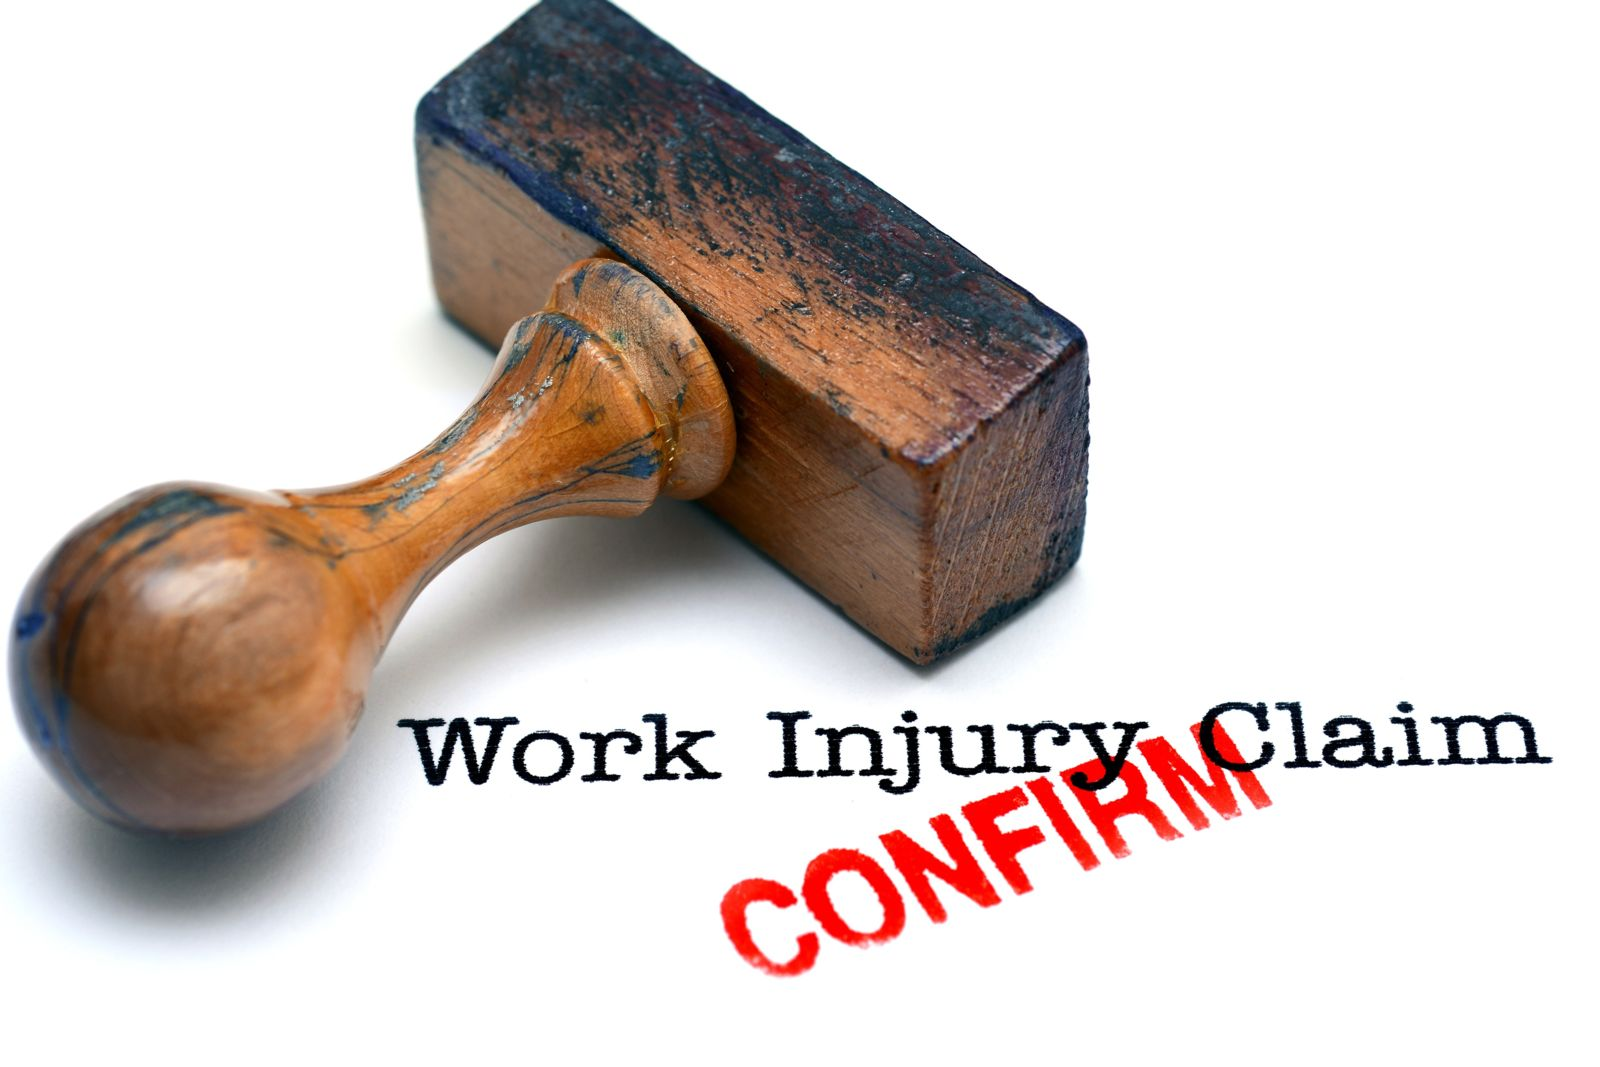 Augusta Workers' Compensation Lawyer Chris Hudson and Associates